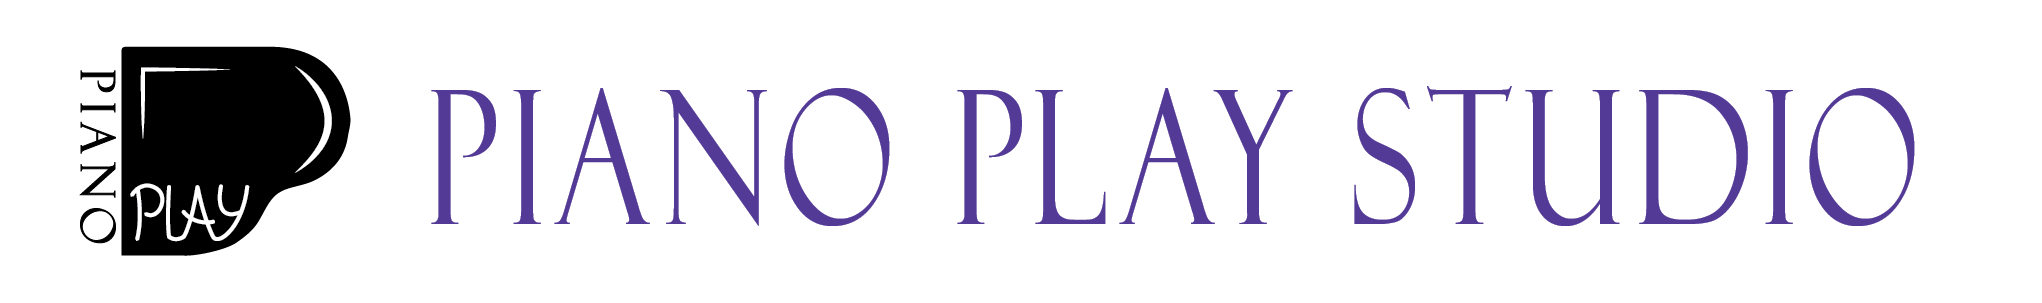 Piano Play Studio